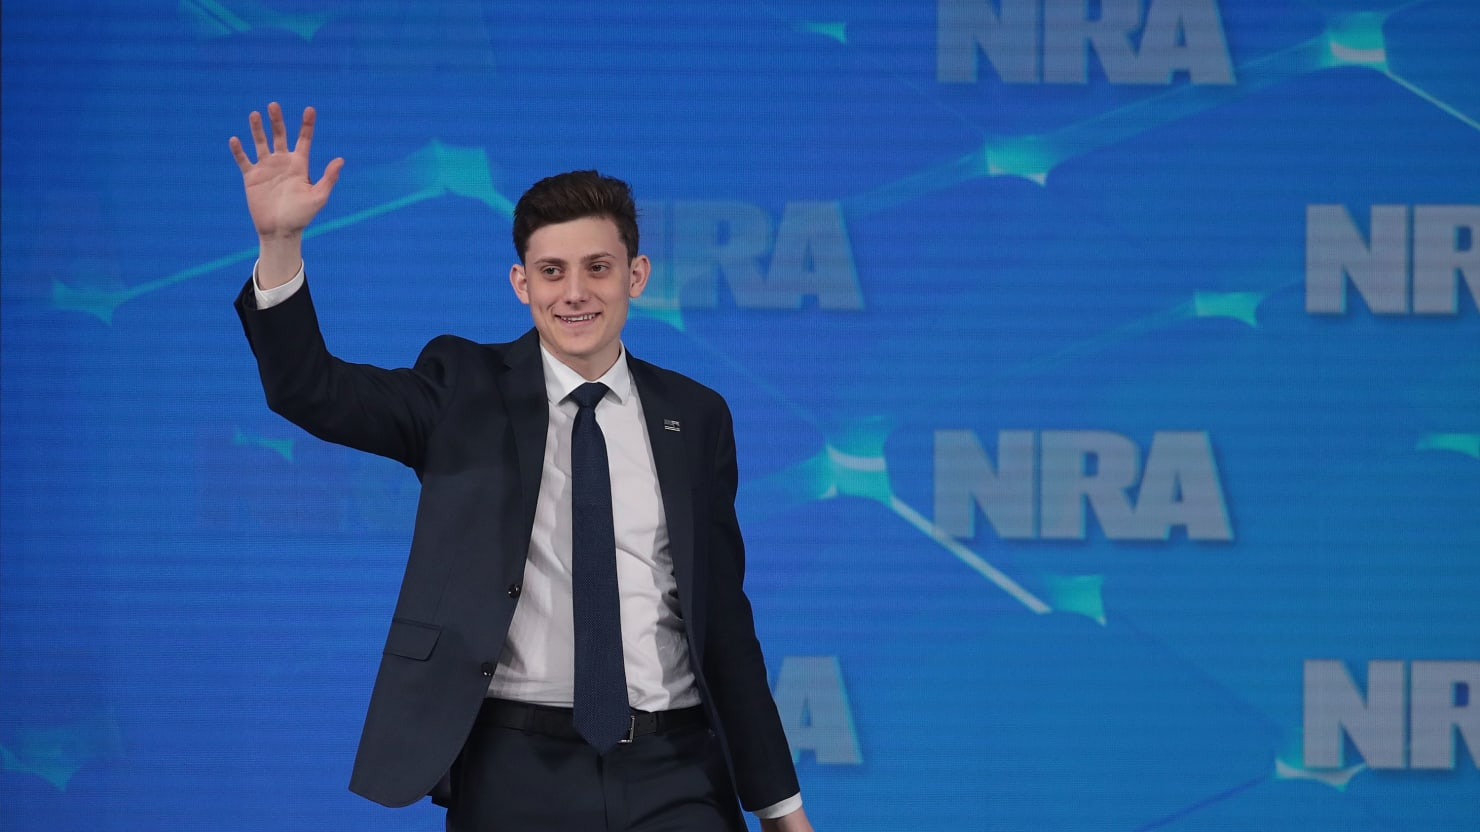 Pro-Gun Parkland Teen Kyle Kashuv Apologizes for 'Inflammatory' Racial Comments